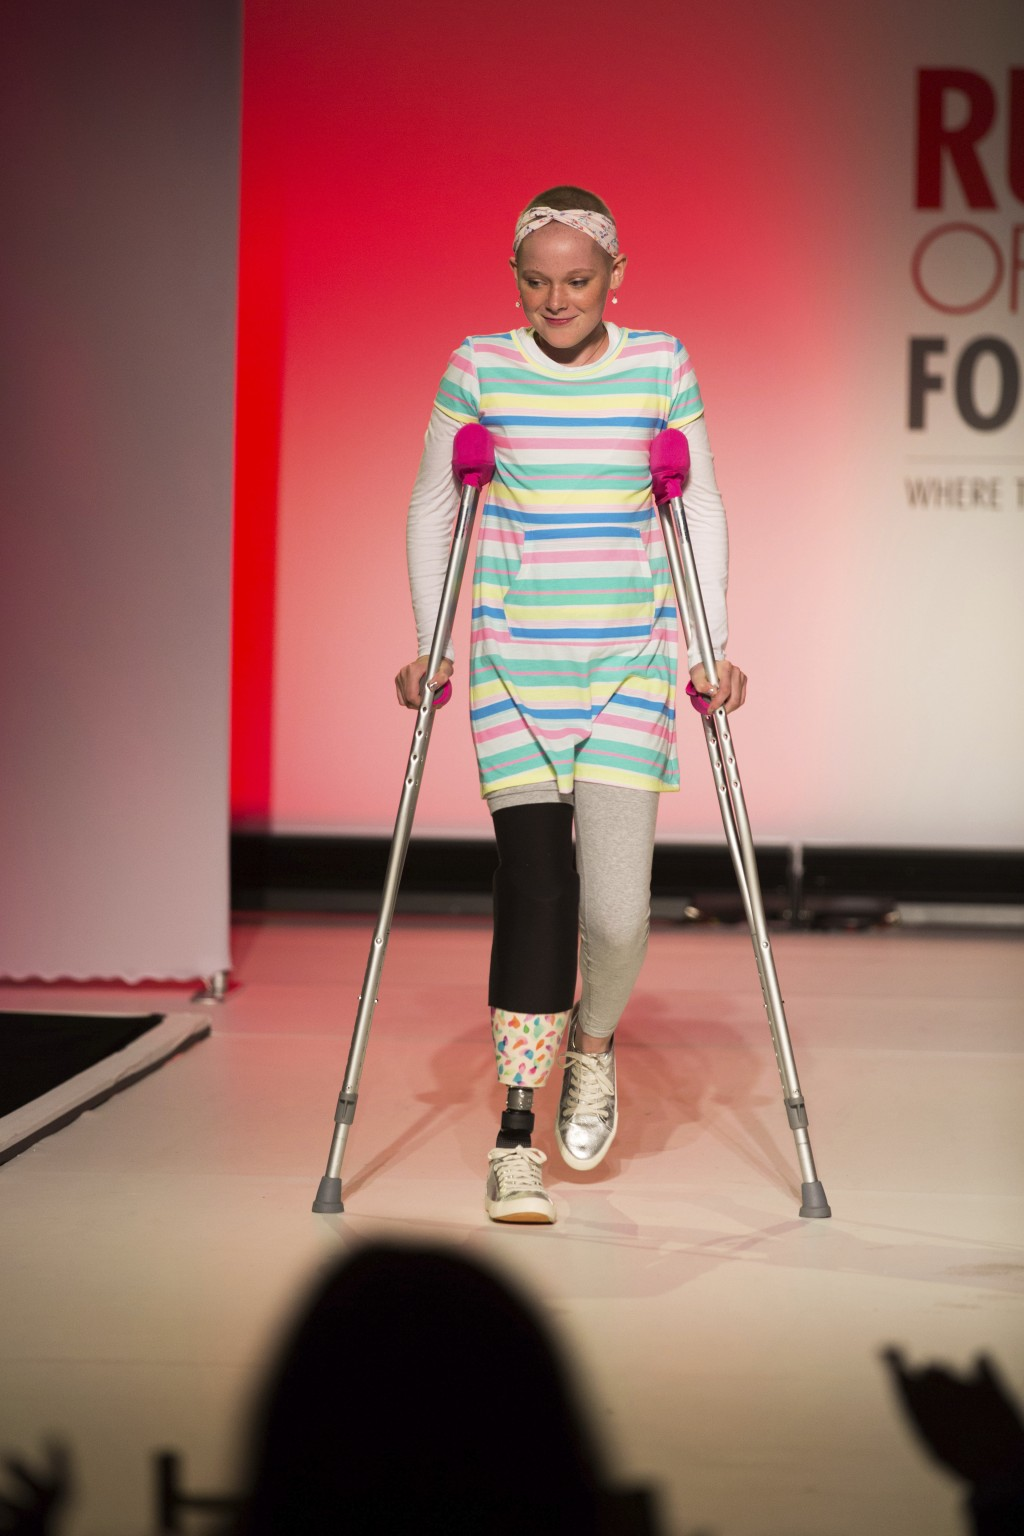 The Runway of Dreams collection is modeled Wednesday, Sept. 5, 2018, during Fashion Week in New York. The runway show featured models with disabilitie...